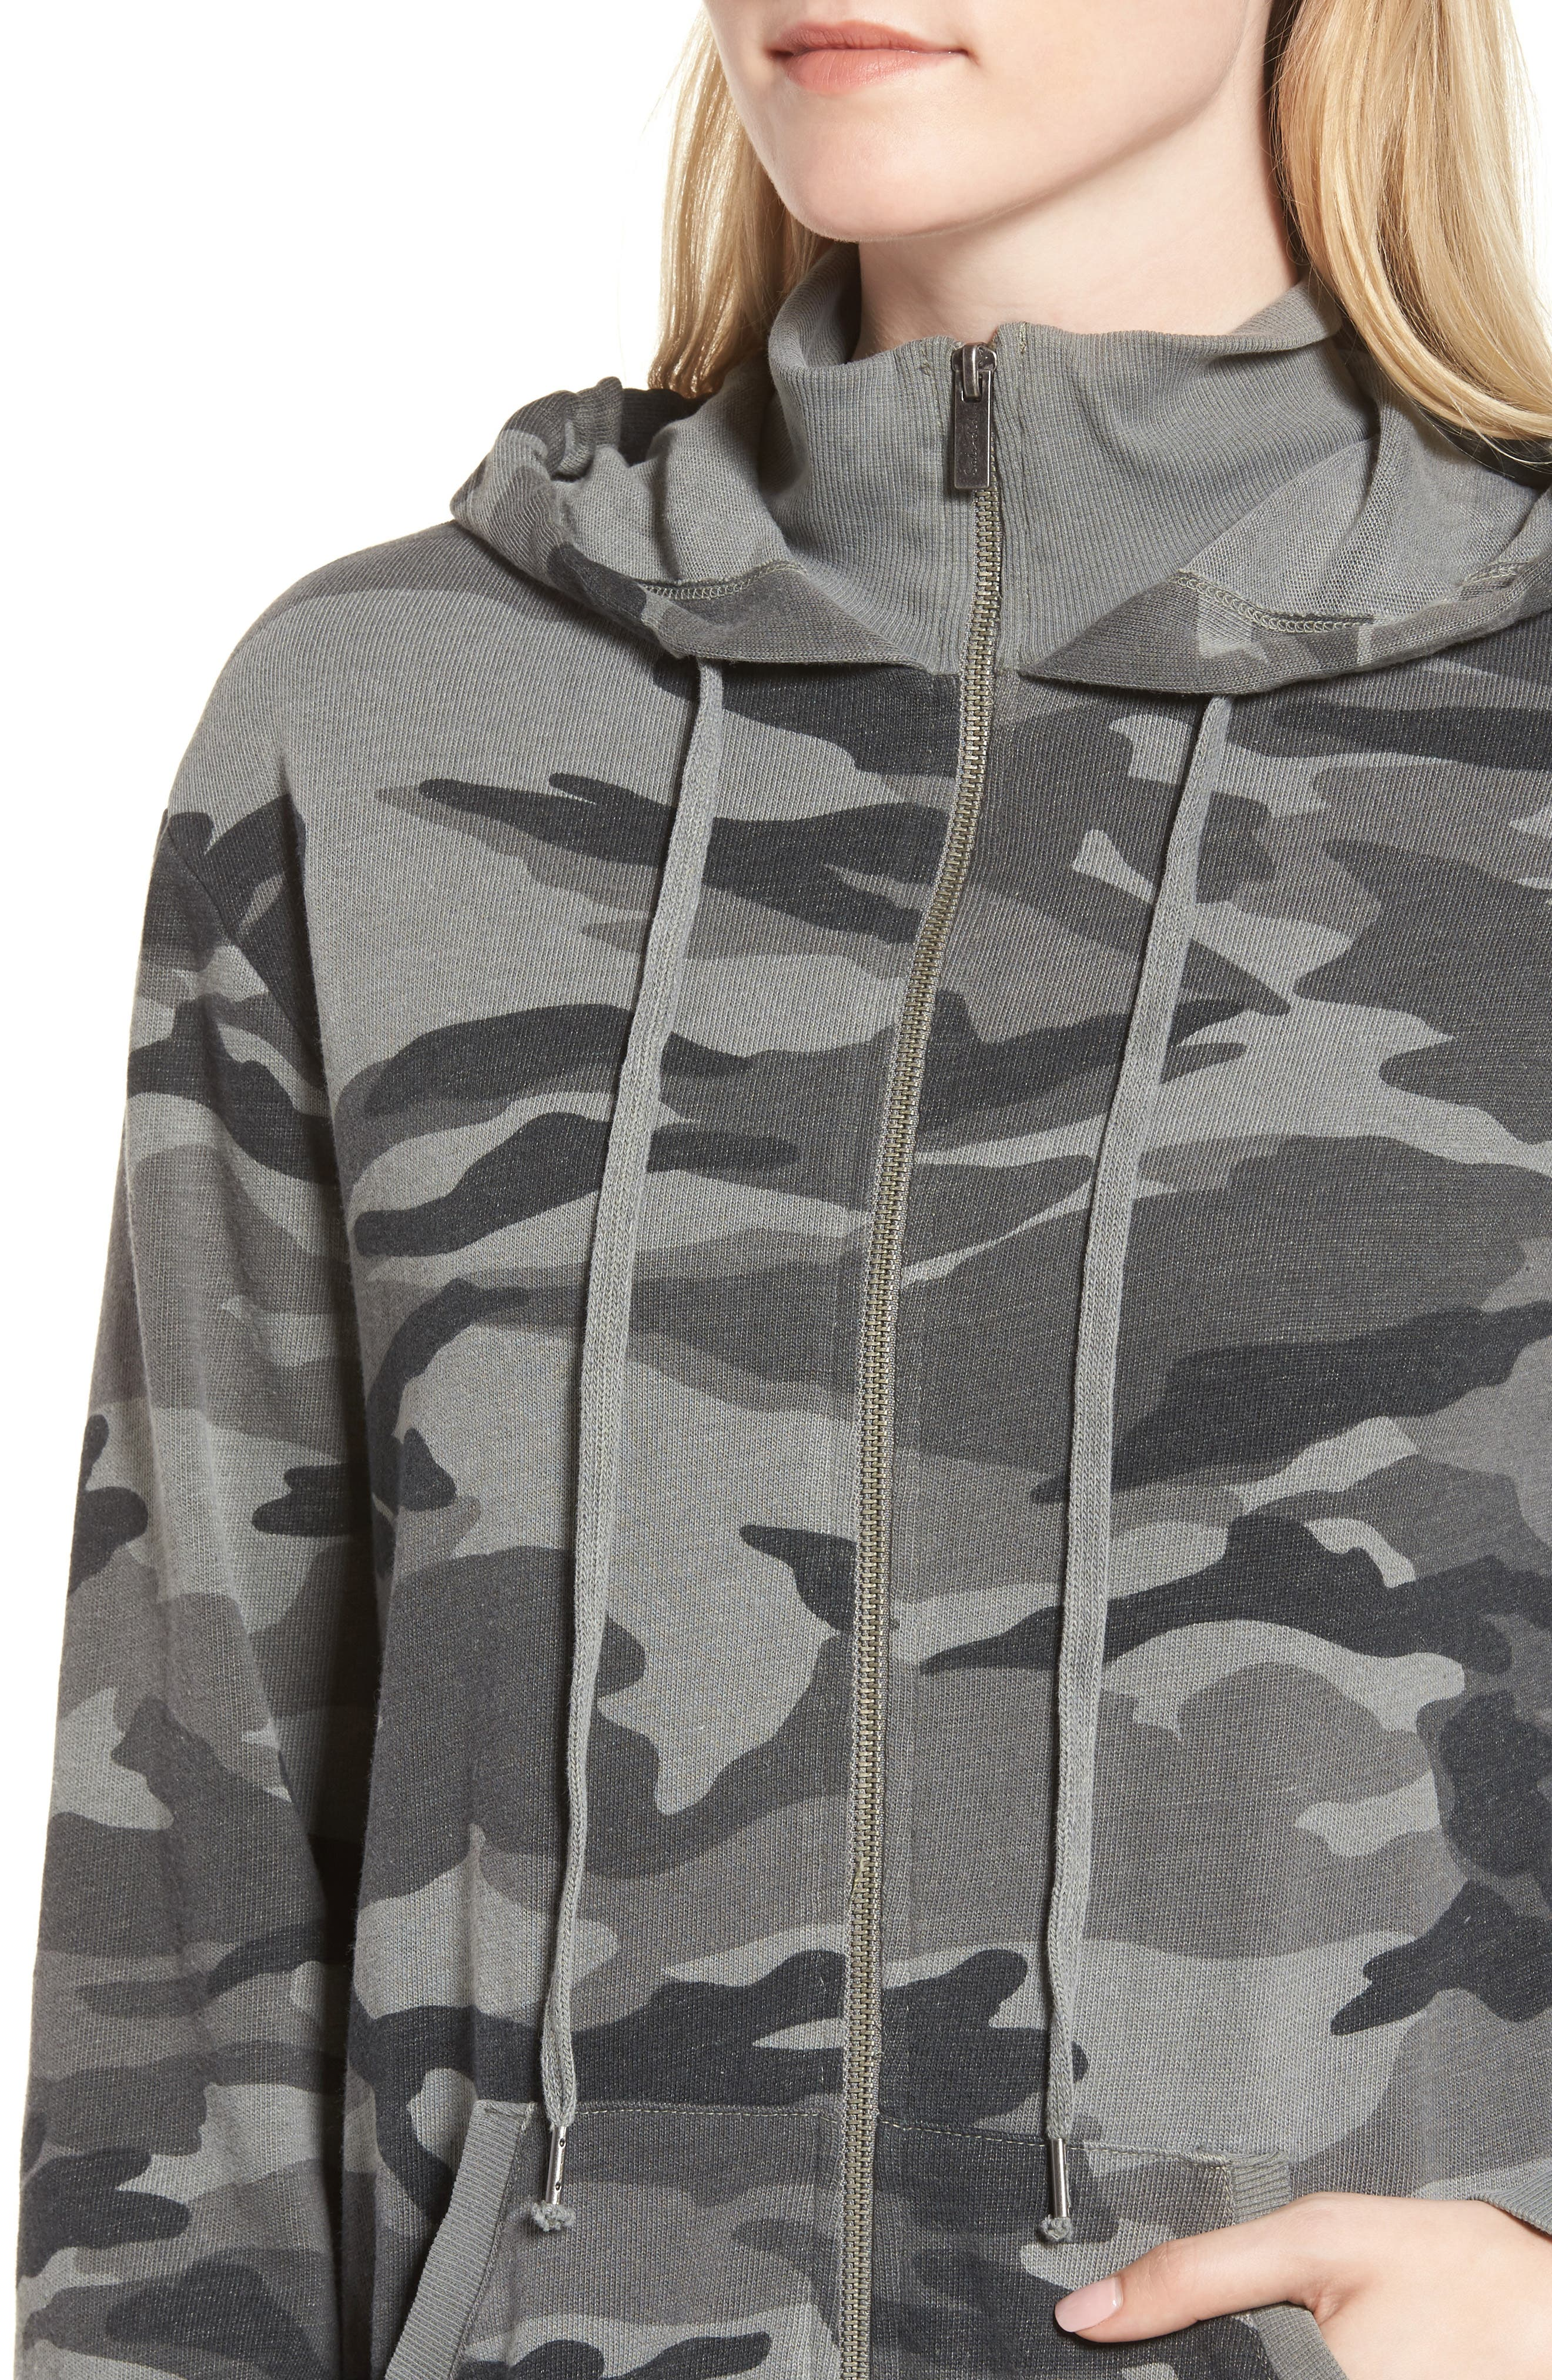 French Terry Camo Sweatshirt,                             Alternate thumbnail 4, color,                             301